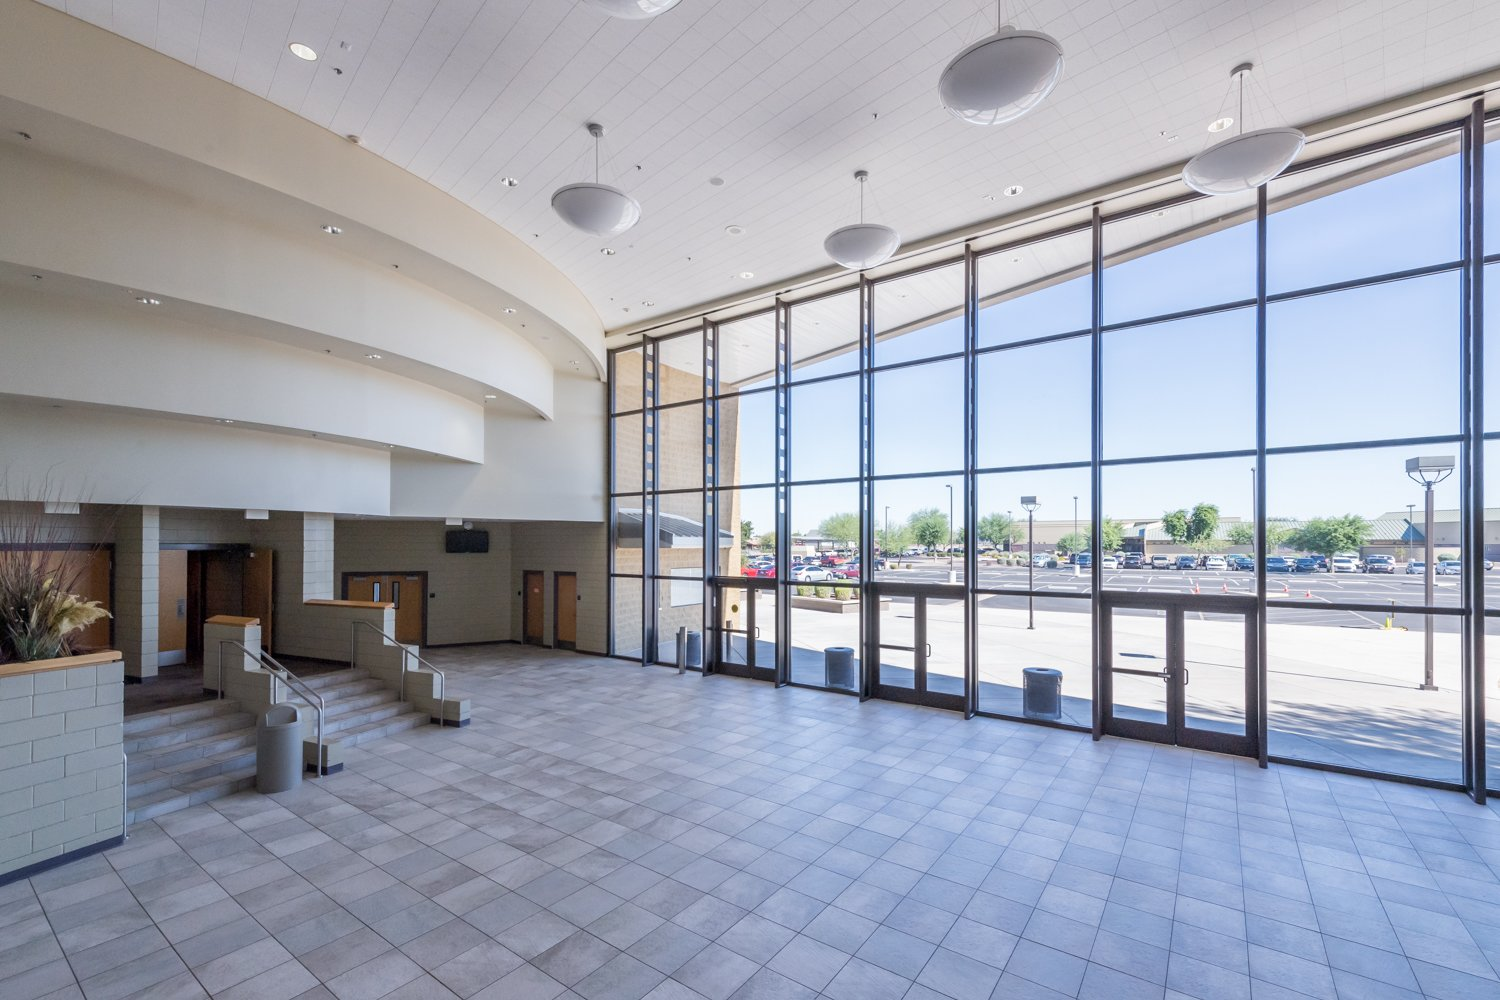 The concourse of The Vista now has open box office hours to sell